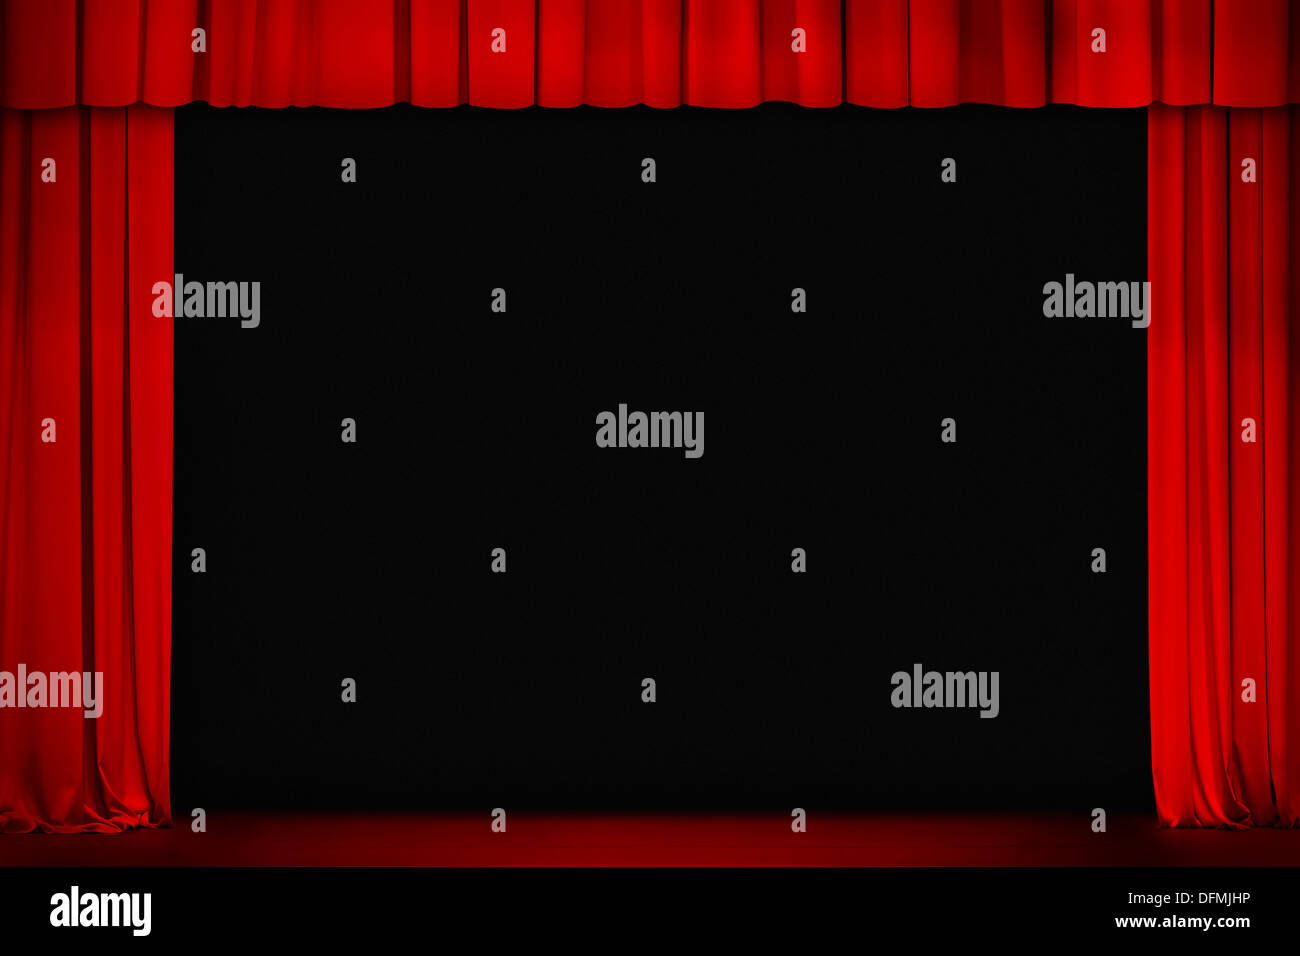 red curtain on theater or cinema stage wide open - Stock Image